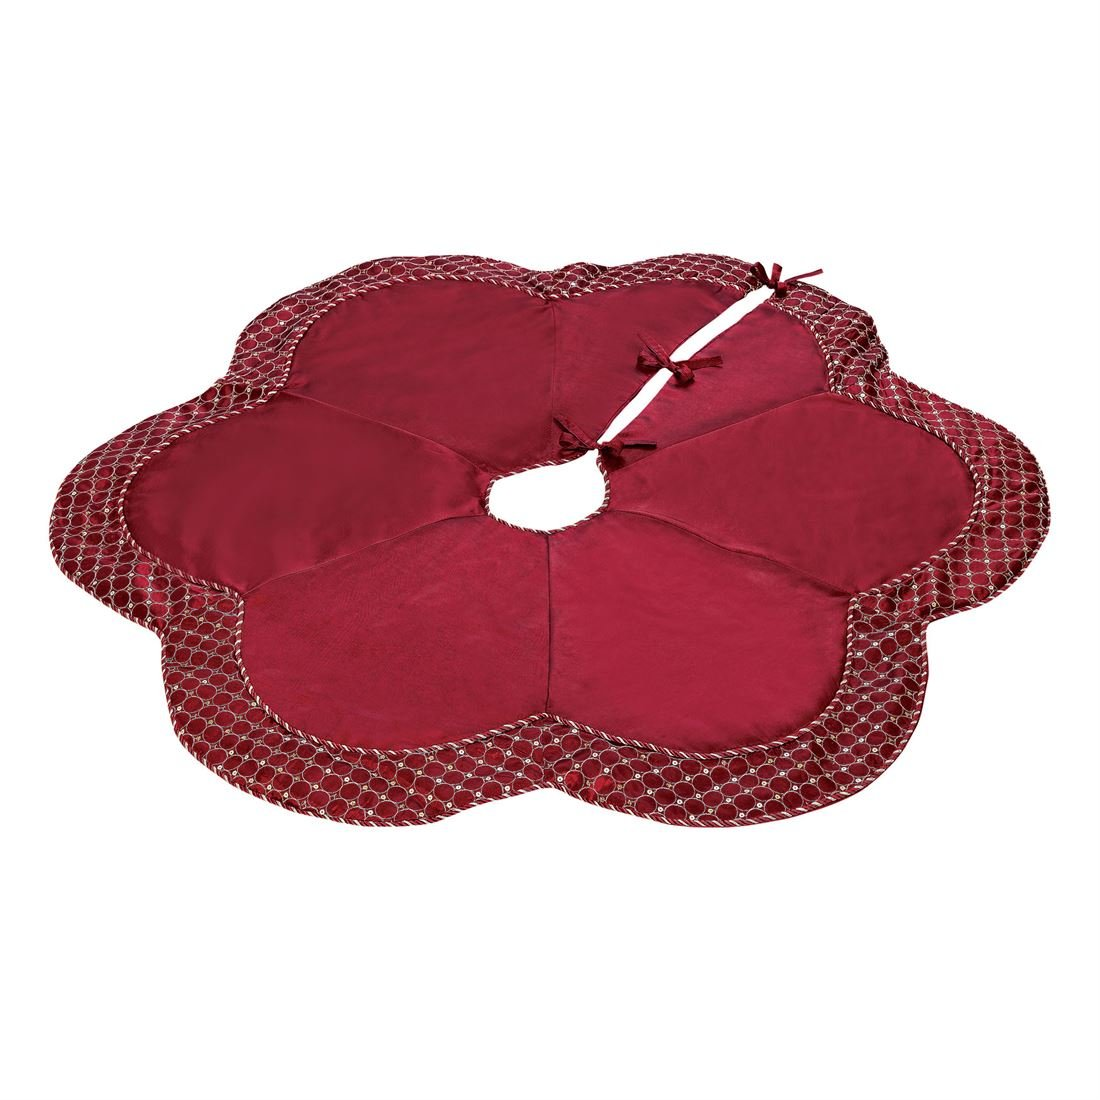 BrylaneHome Scallop Edge Border Christmas Tree Skirt (Red,0)